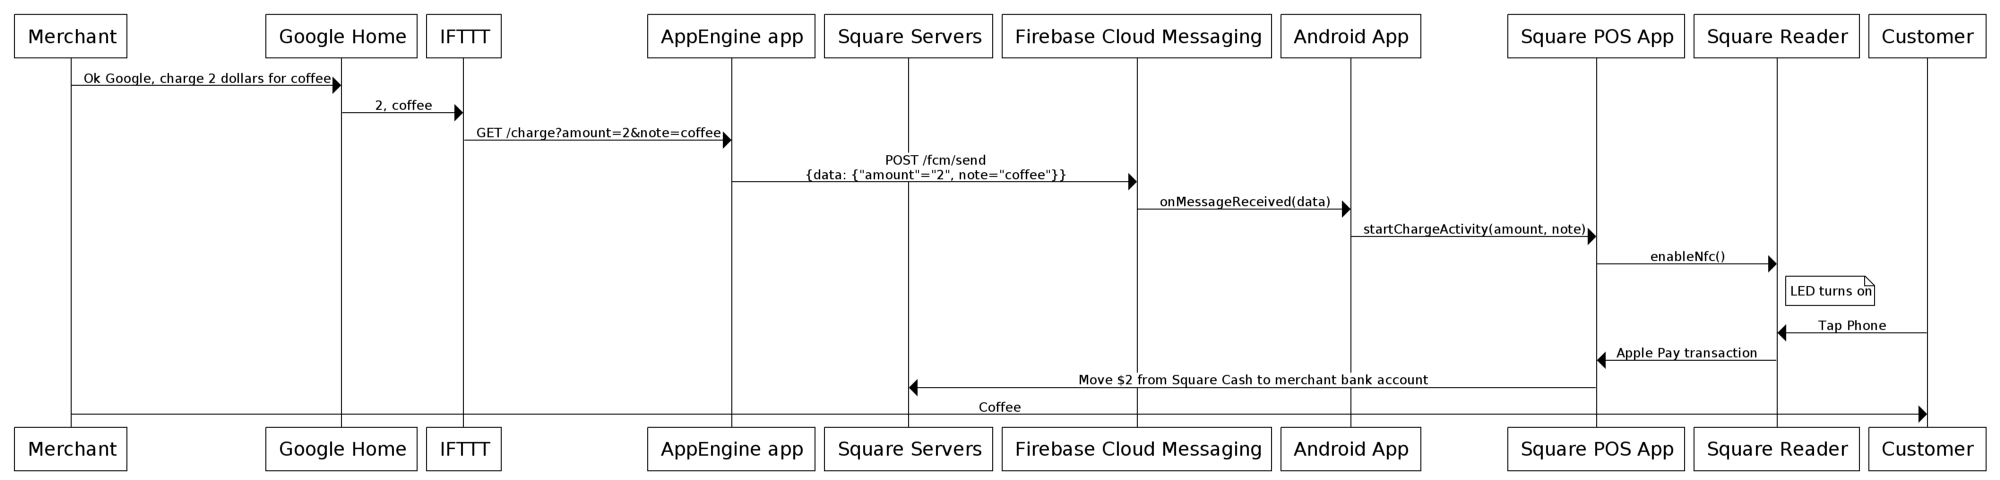 Ok google charge 2 for coffee square corner blog medium i hope you enjoyed this blog post the sources for this project are available on github what cool things are you going to build on top of our public apis ccuart Image collections